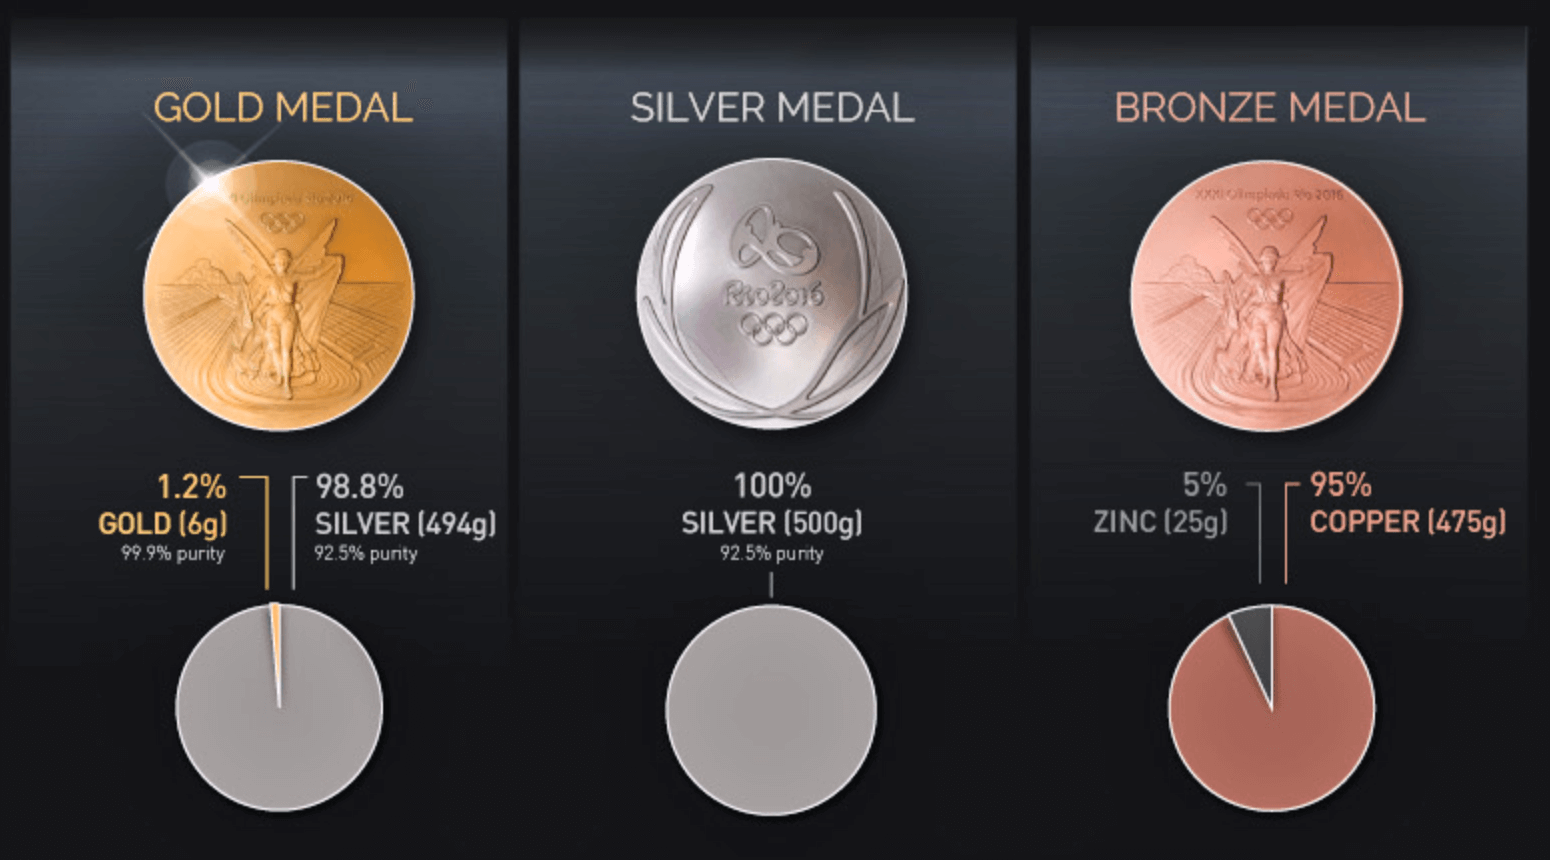 olympic gold value medal 2016 rio infographic